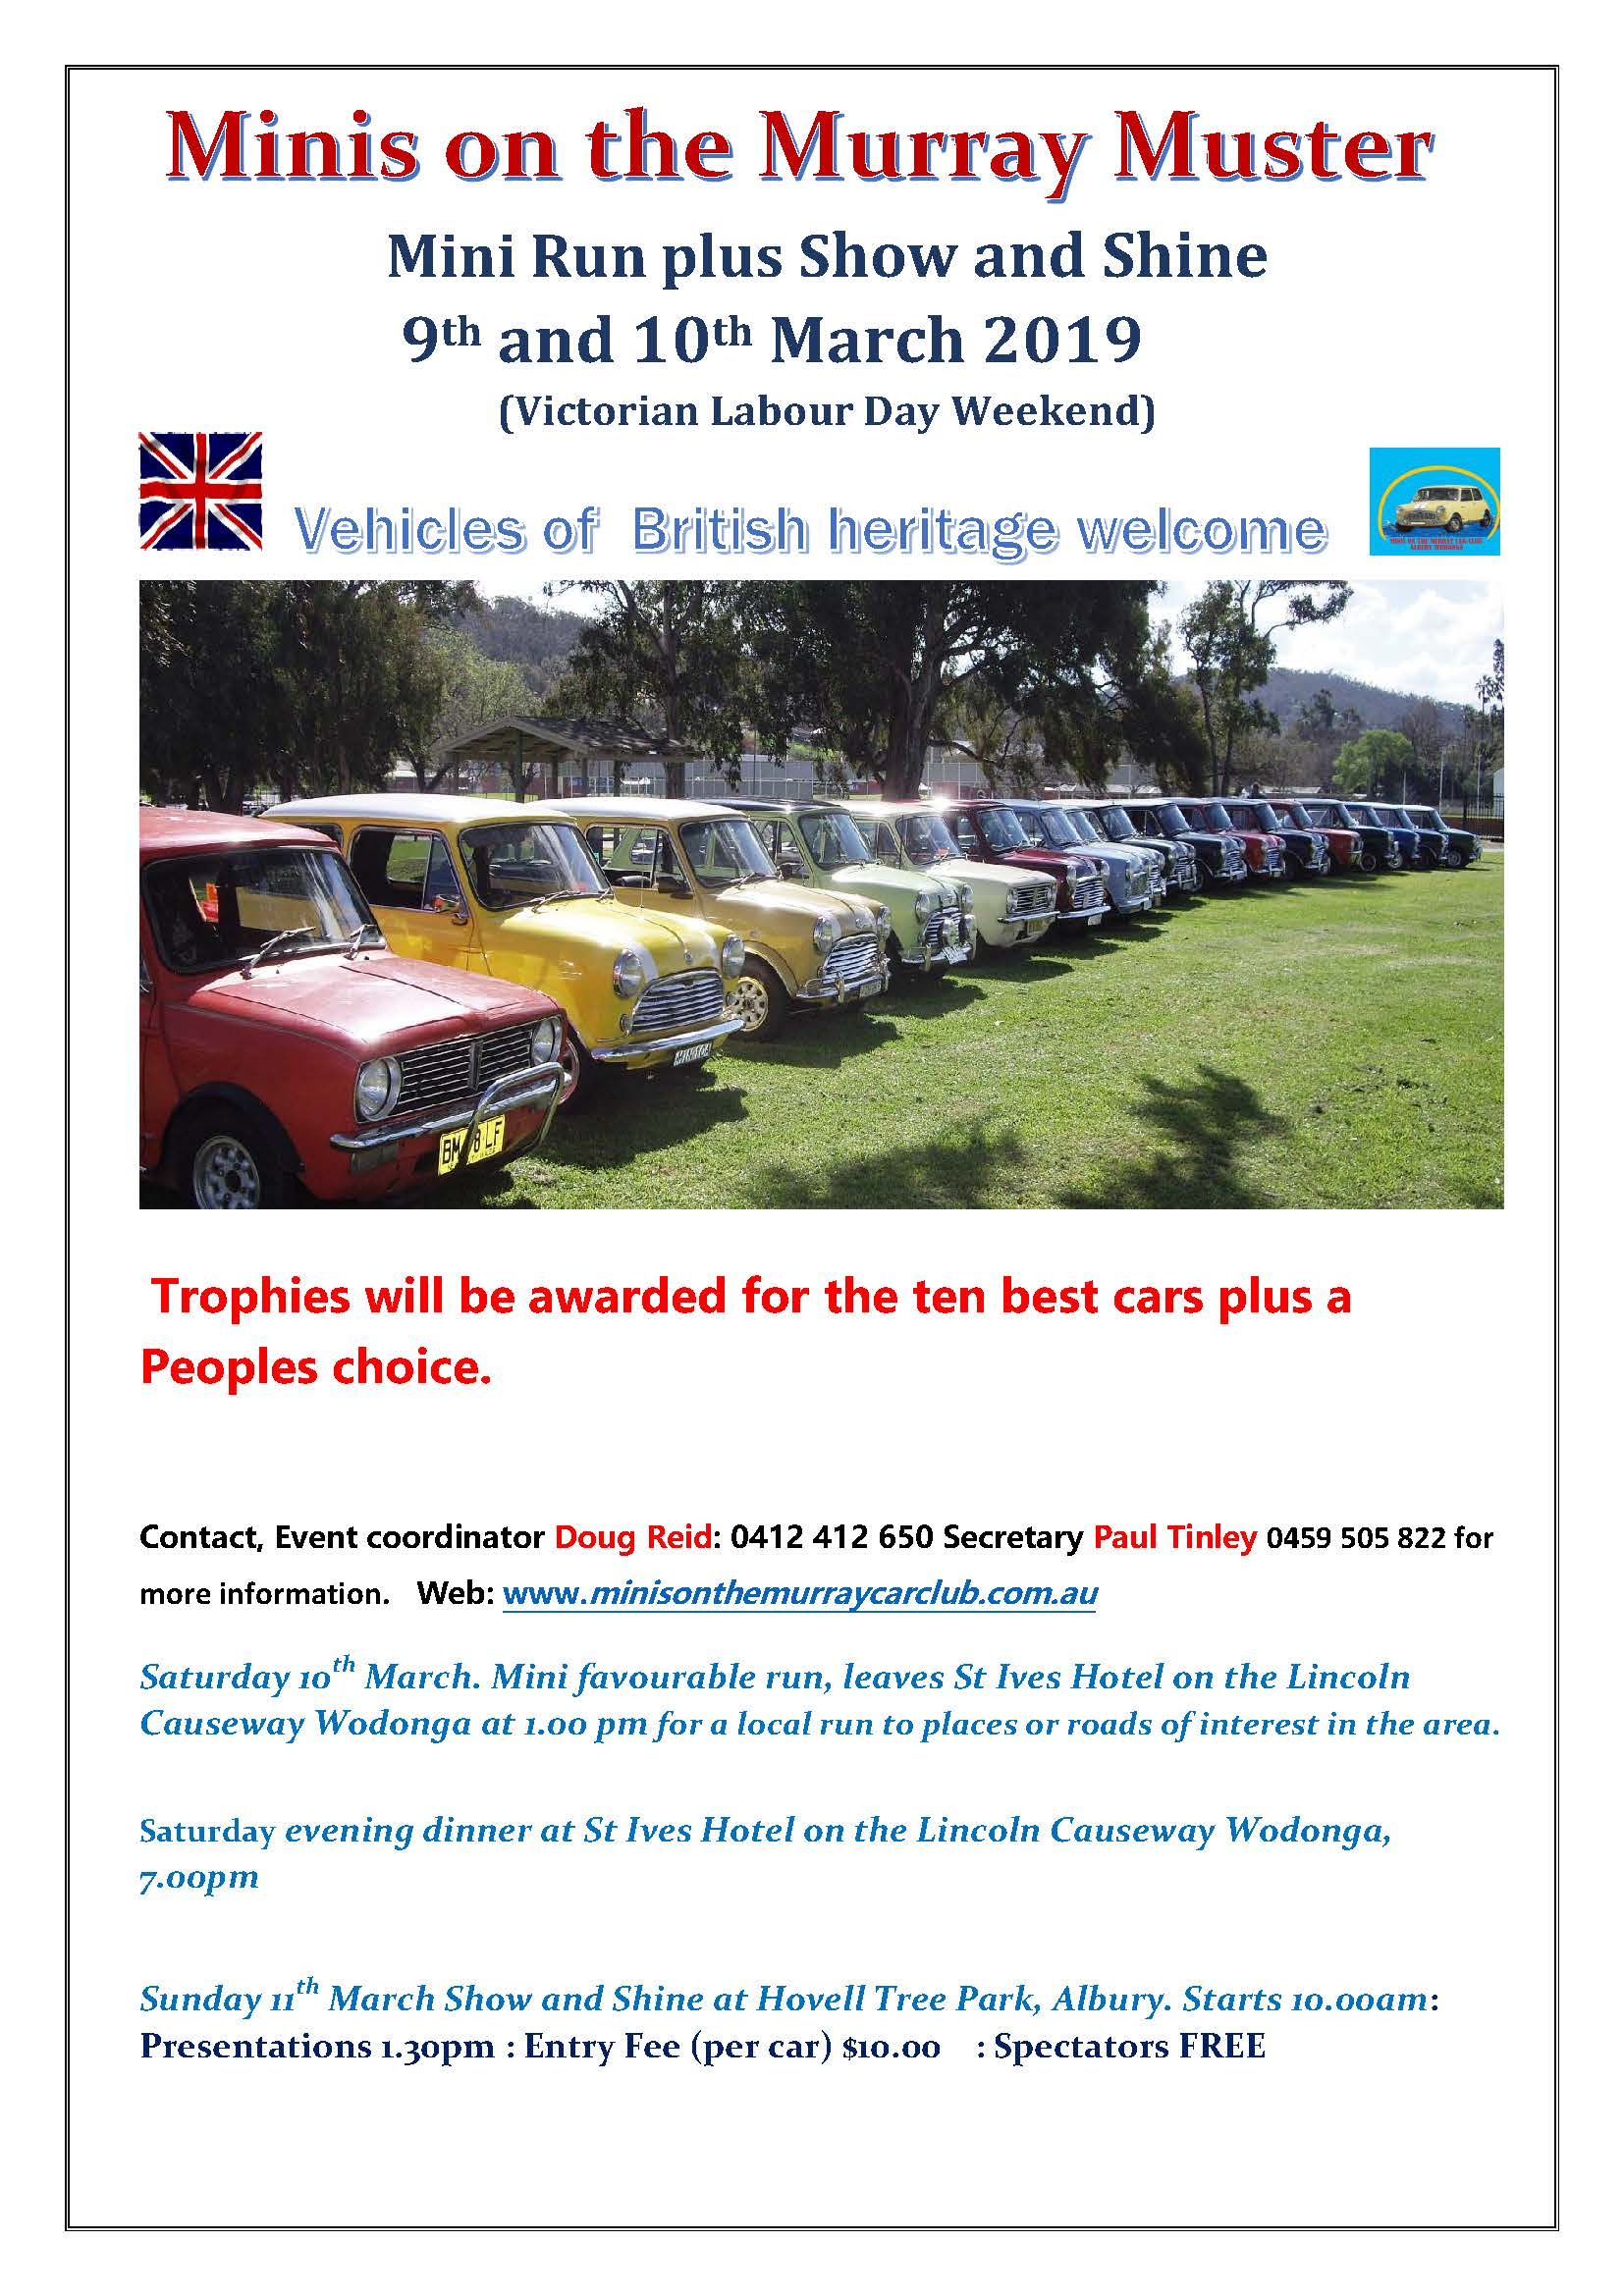 MINIS ON THE MURRAY 2019FLYER.jpg